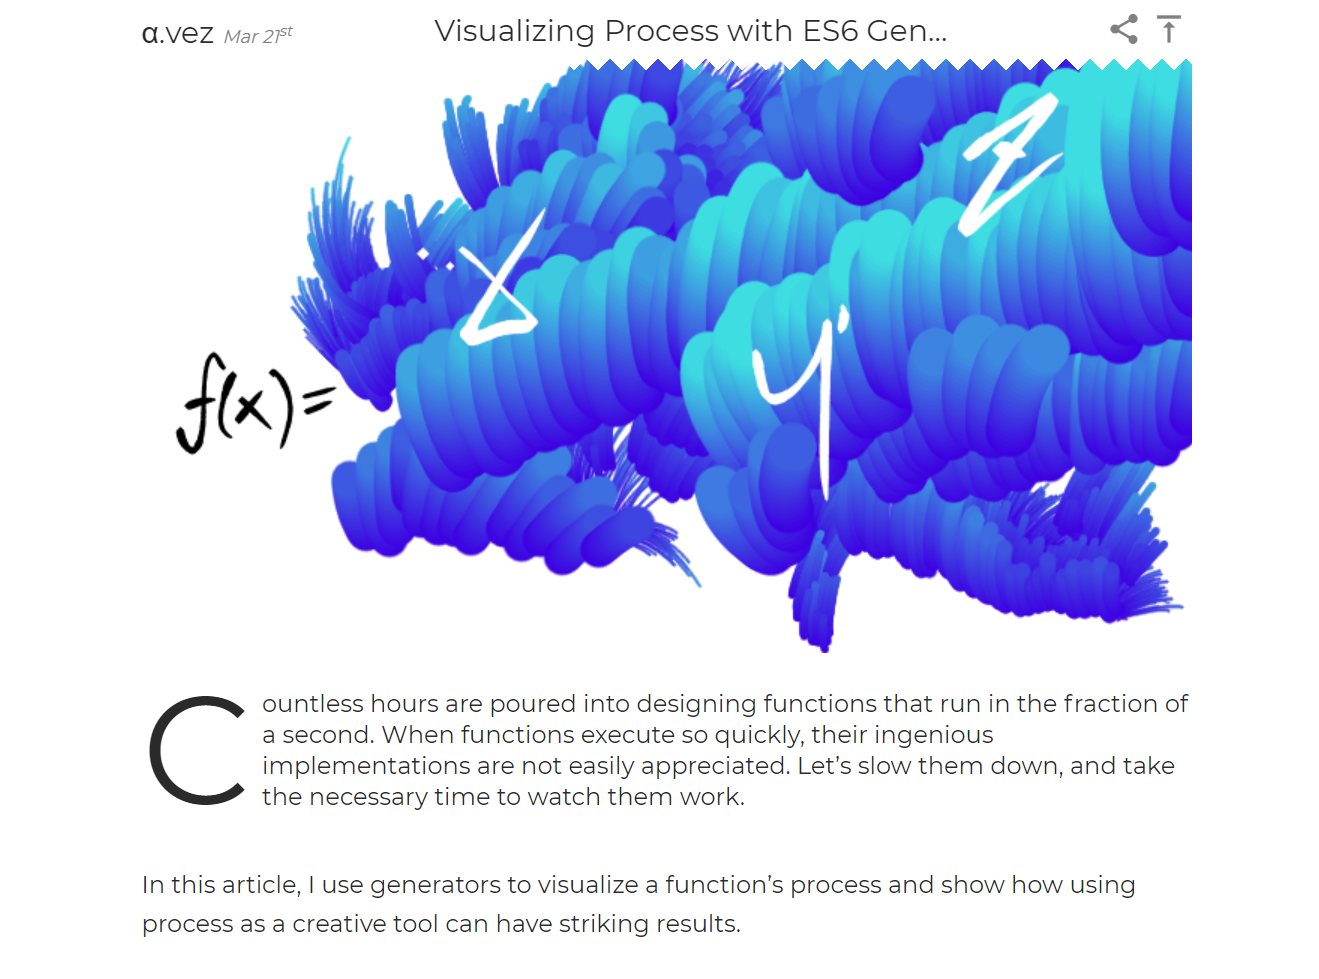 A screenshot of Visualizing Process With ES6 Generators article